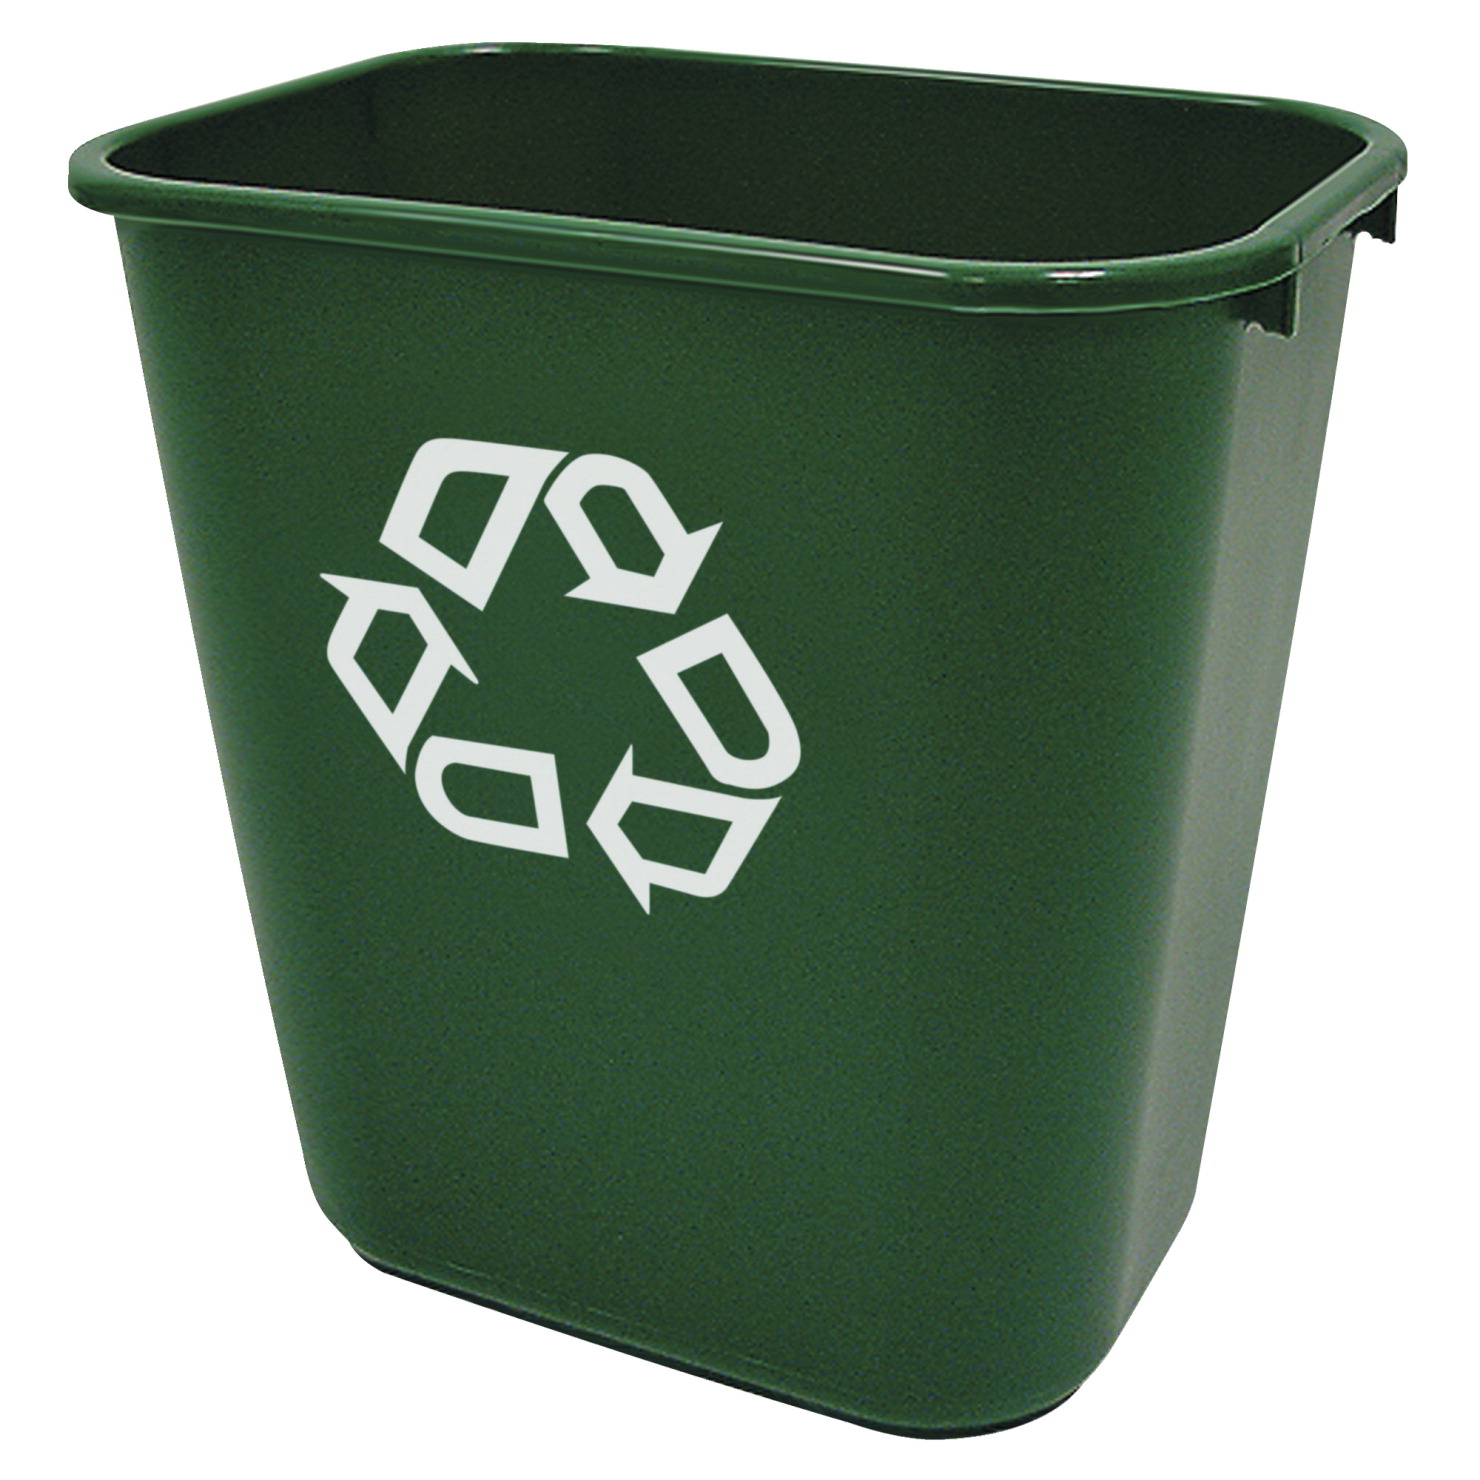 Rubbermaid commercial recycling symbol container green soar life rubbermaid commercial recycling symbol container 10 14 x 14 3 biocorpaavc Choice Image